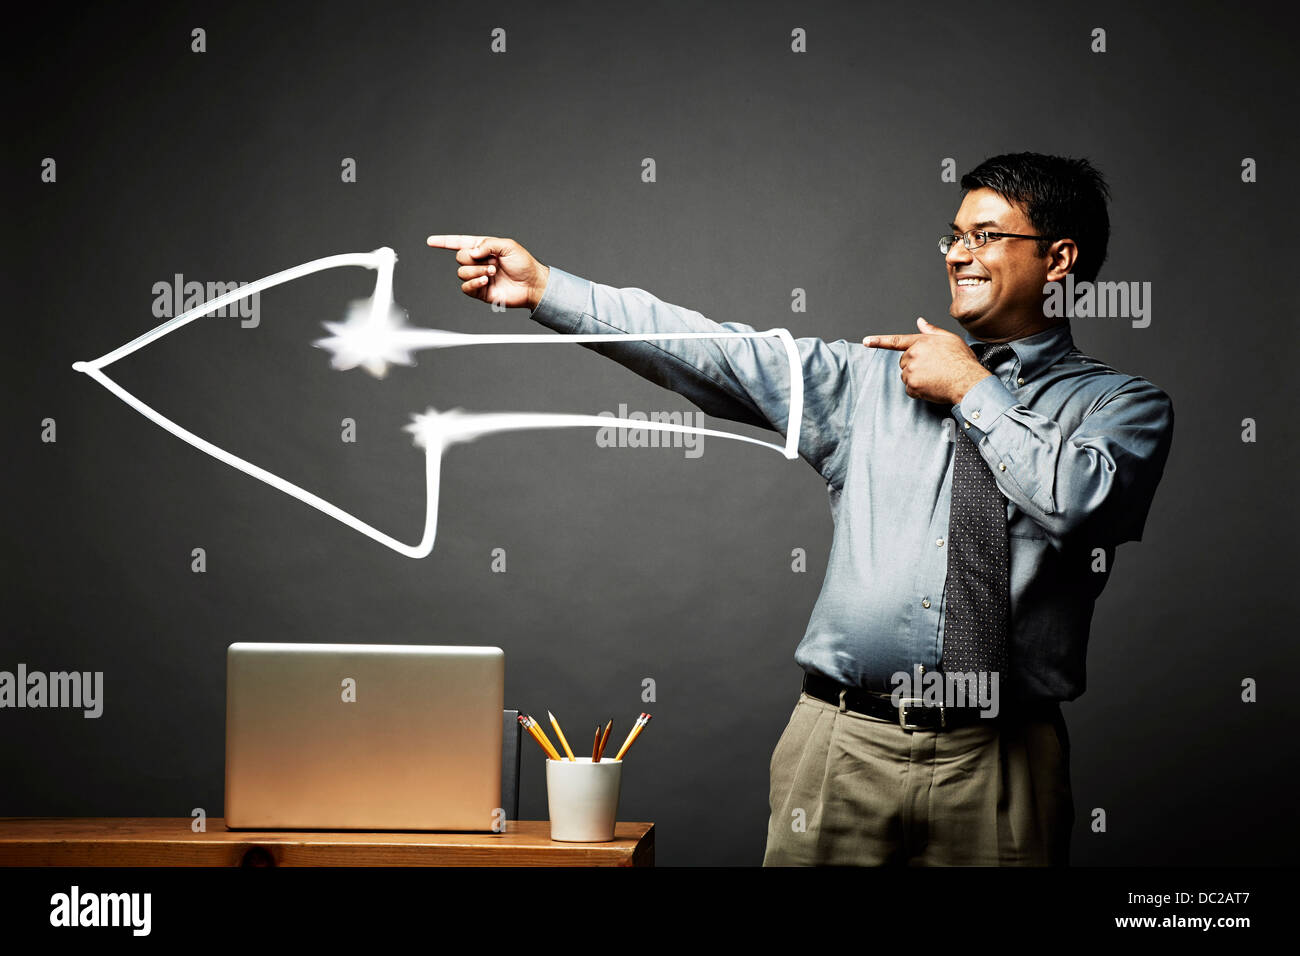 Man pointing the way with a big smile - Stock Image